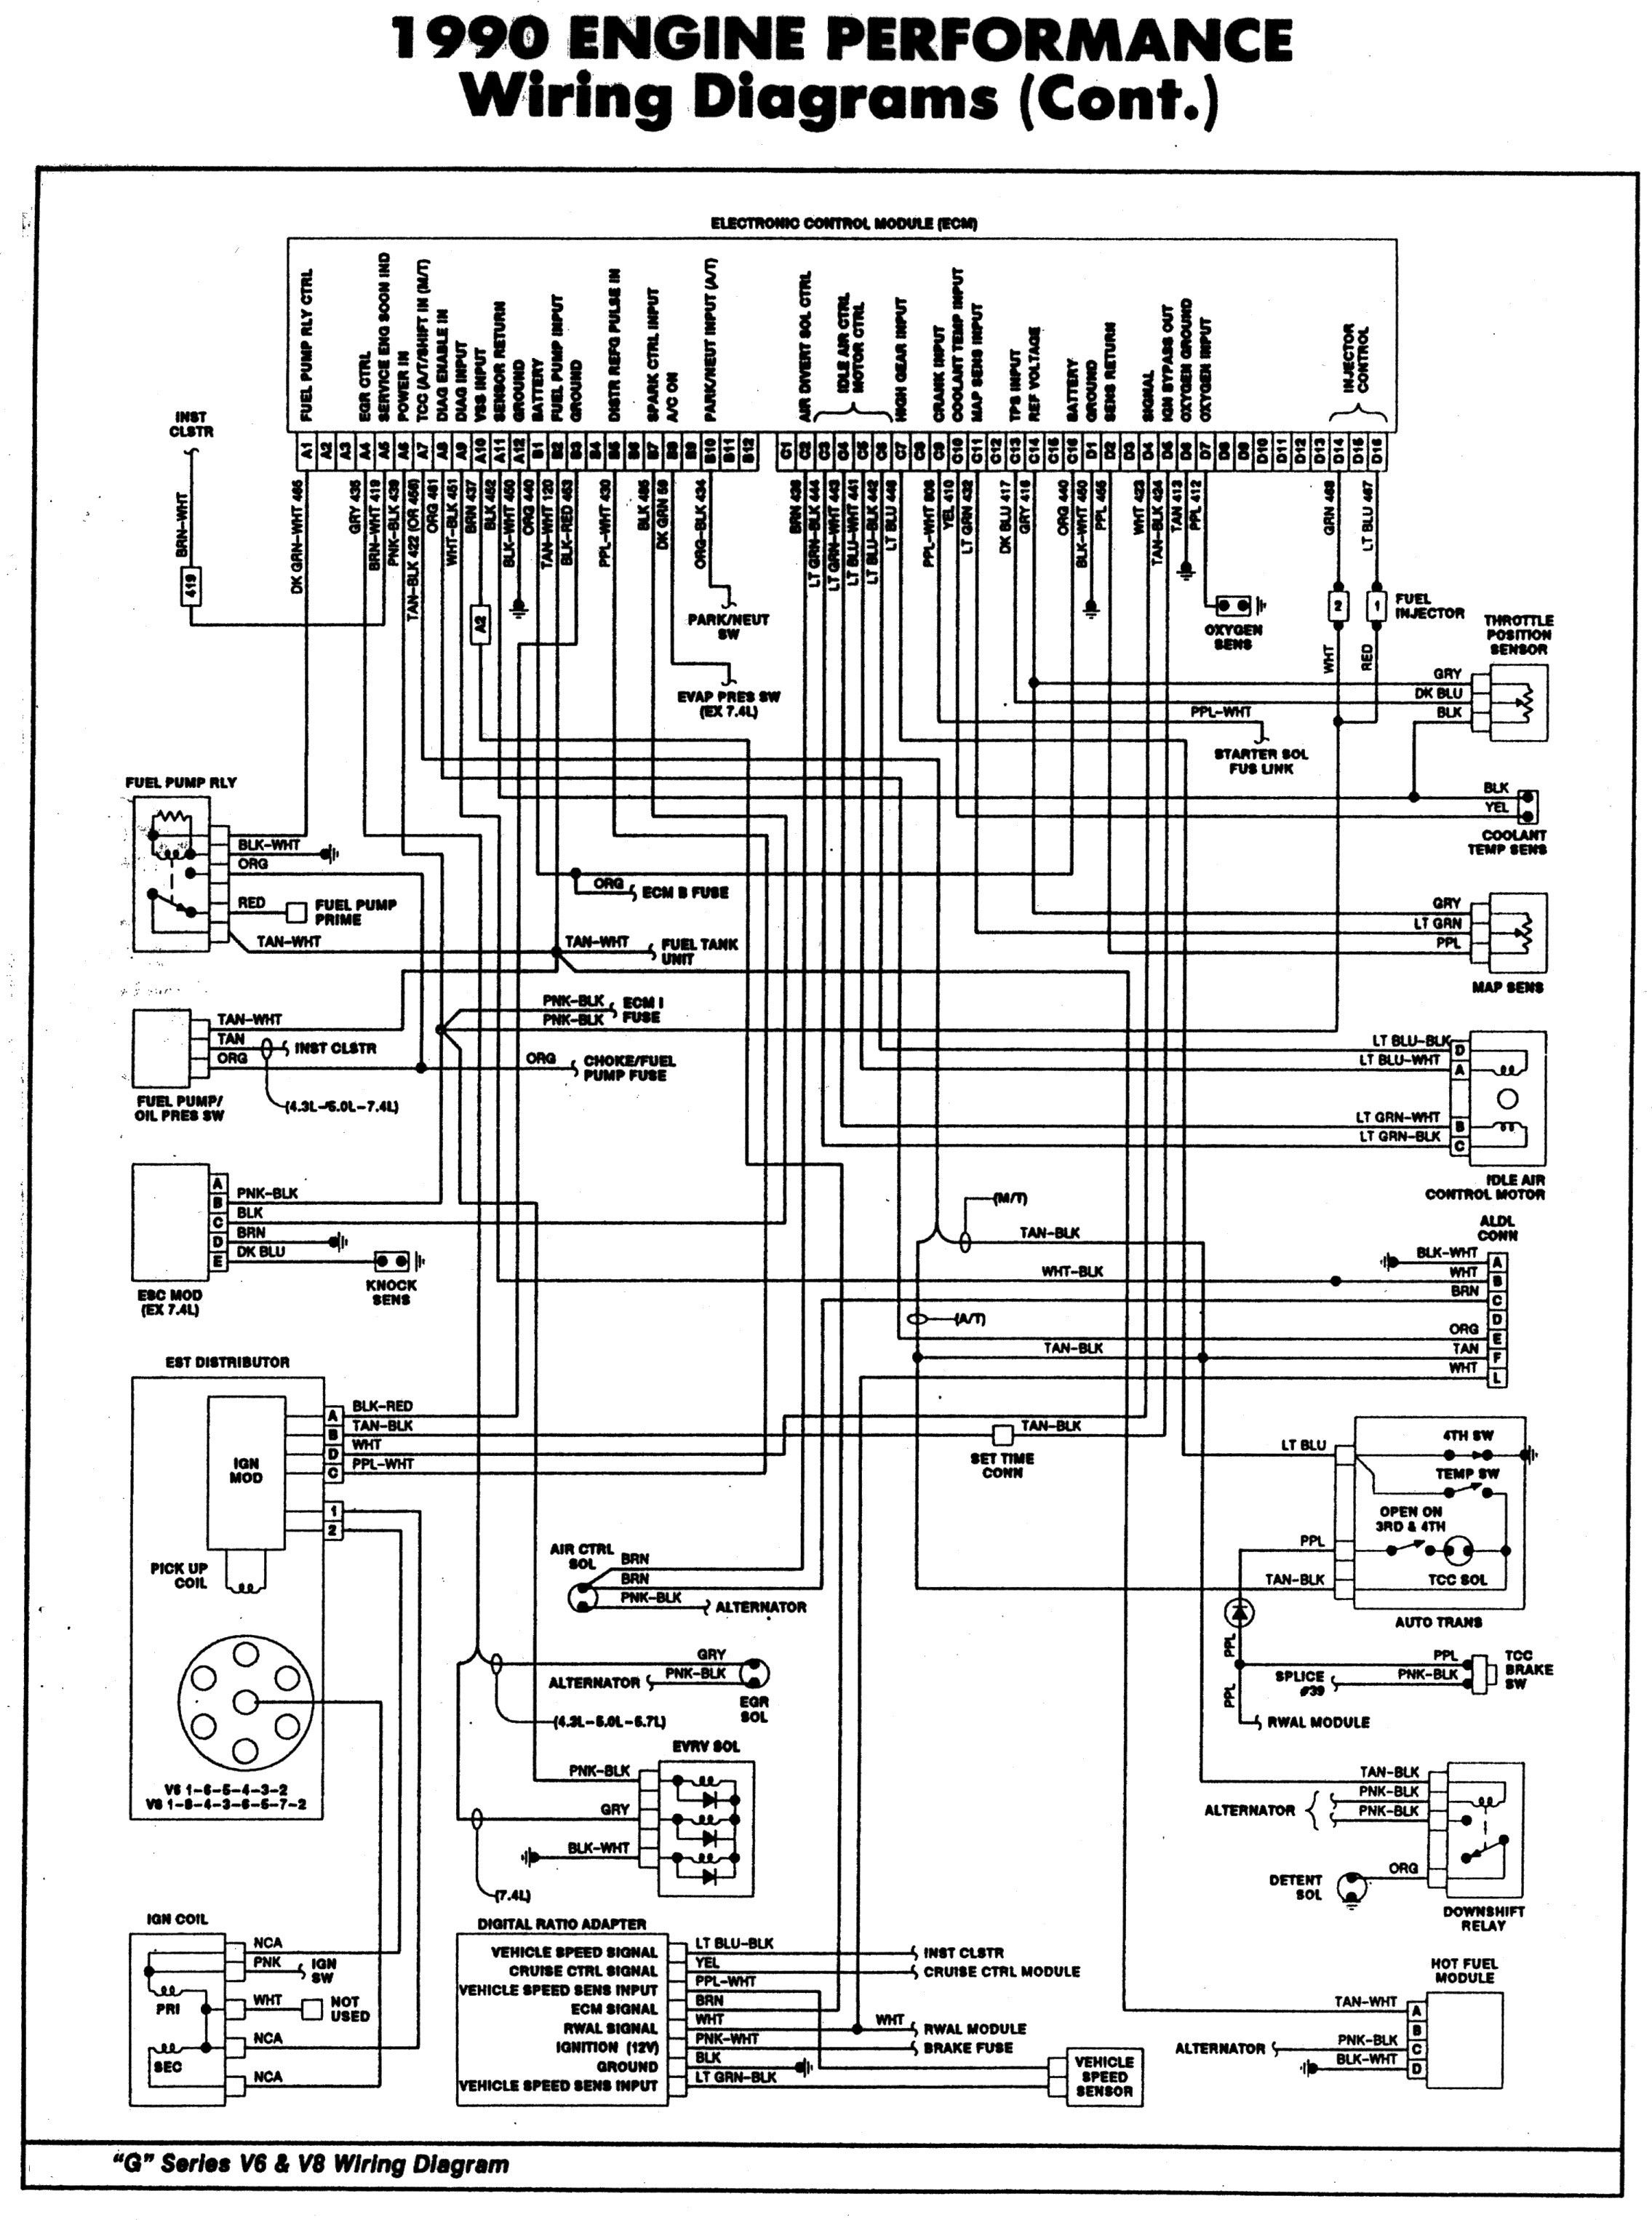 94 k5 blazer wiring diagram blog wiring diagram 1994 Chevy 2500 Wiring Diagram 94 k5 blazer wiring diagram wiring diagram data today 94 chevy blazer radio wiring diagram 94 k5 blazer wiring diagram